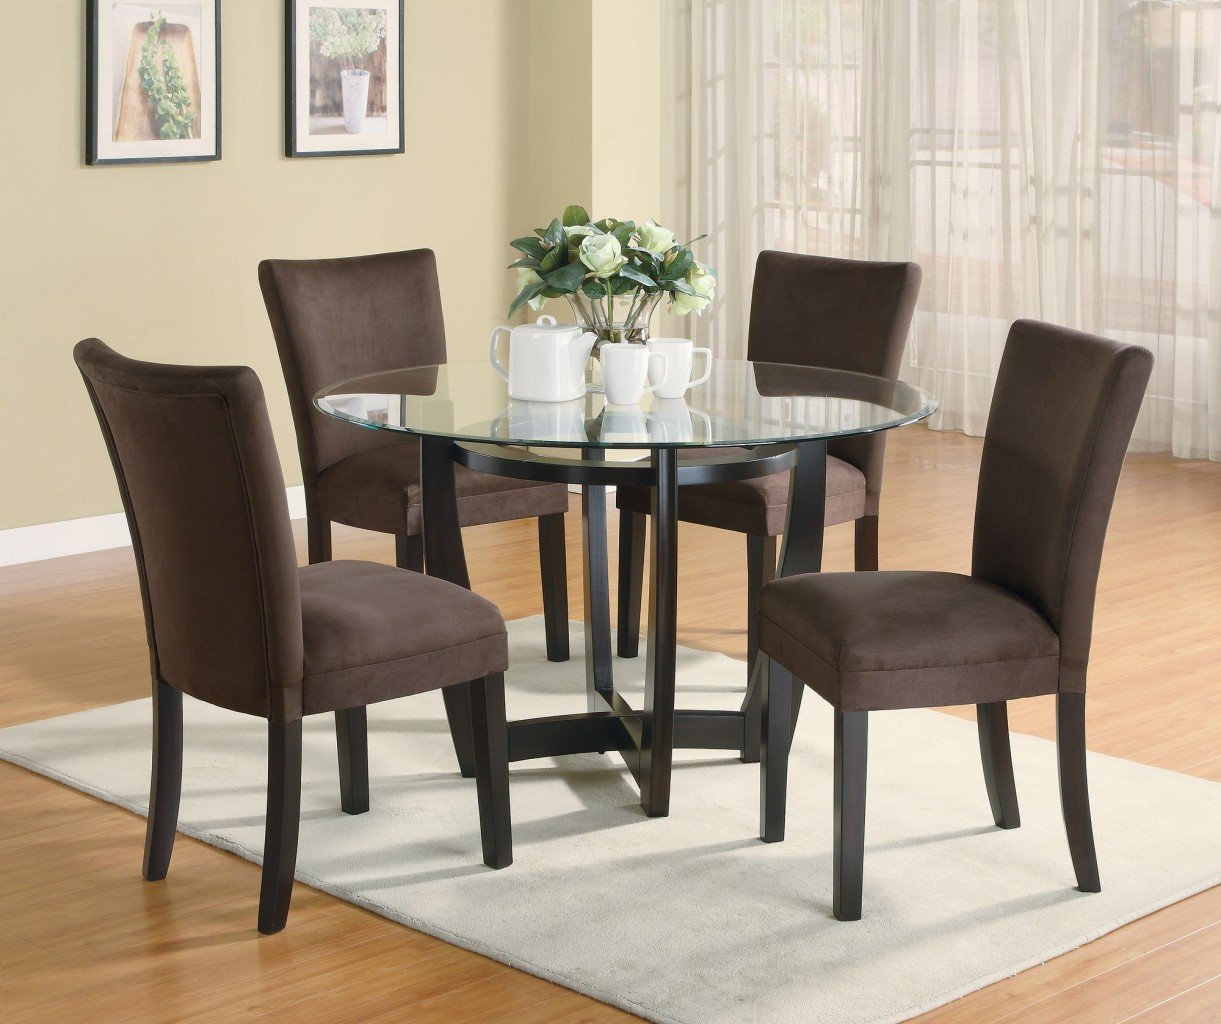 Cheap Dining Table With Chairs: Cheap Dining Room Table Sets